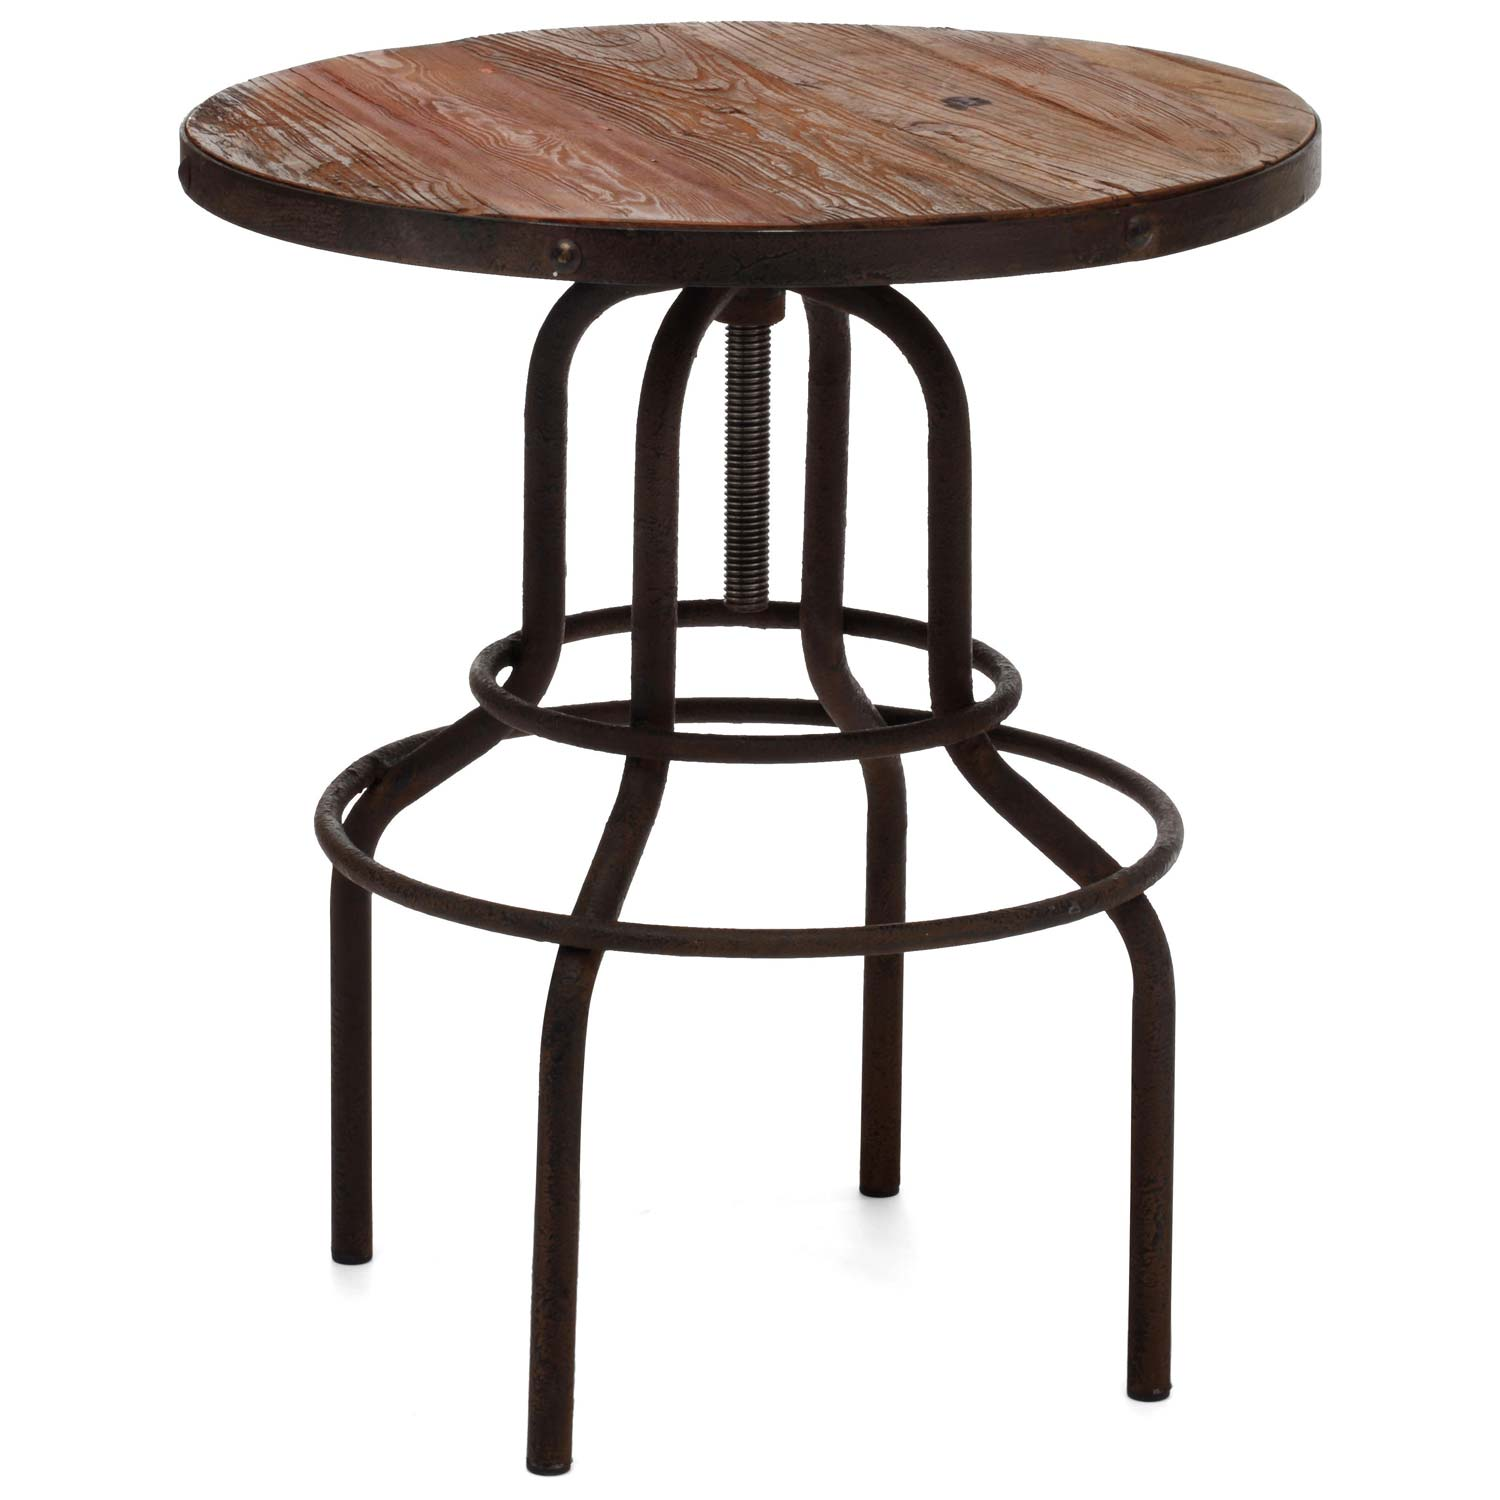 twin peaks round bistro table antique metal distressed natural dcg stores. Black Bedroom Furniture Sets. Home Design Ideas